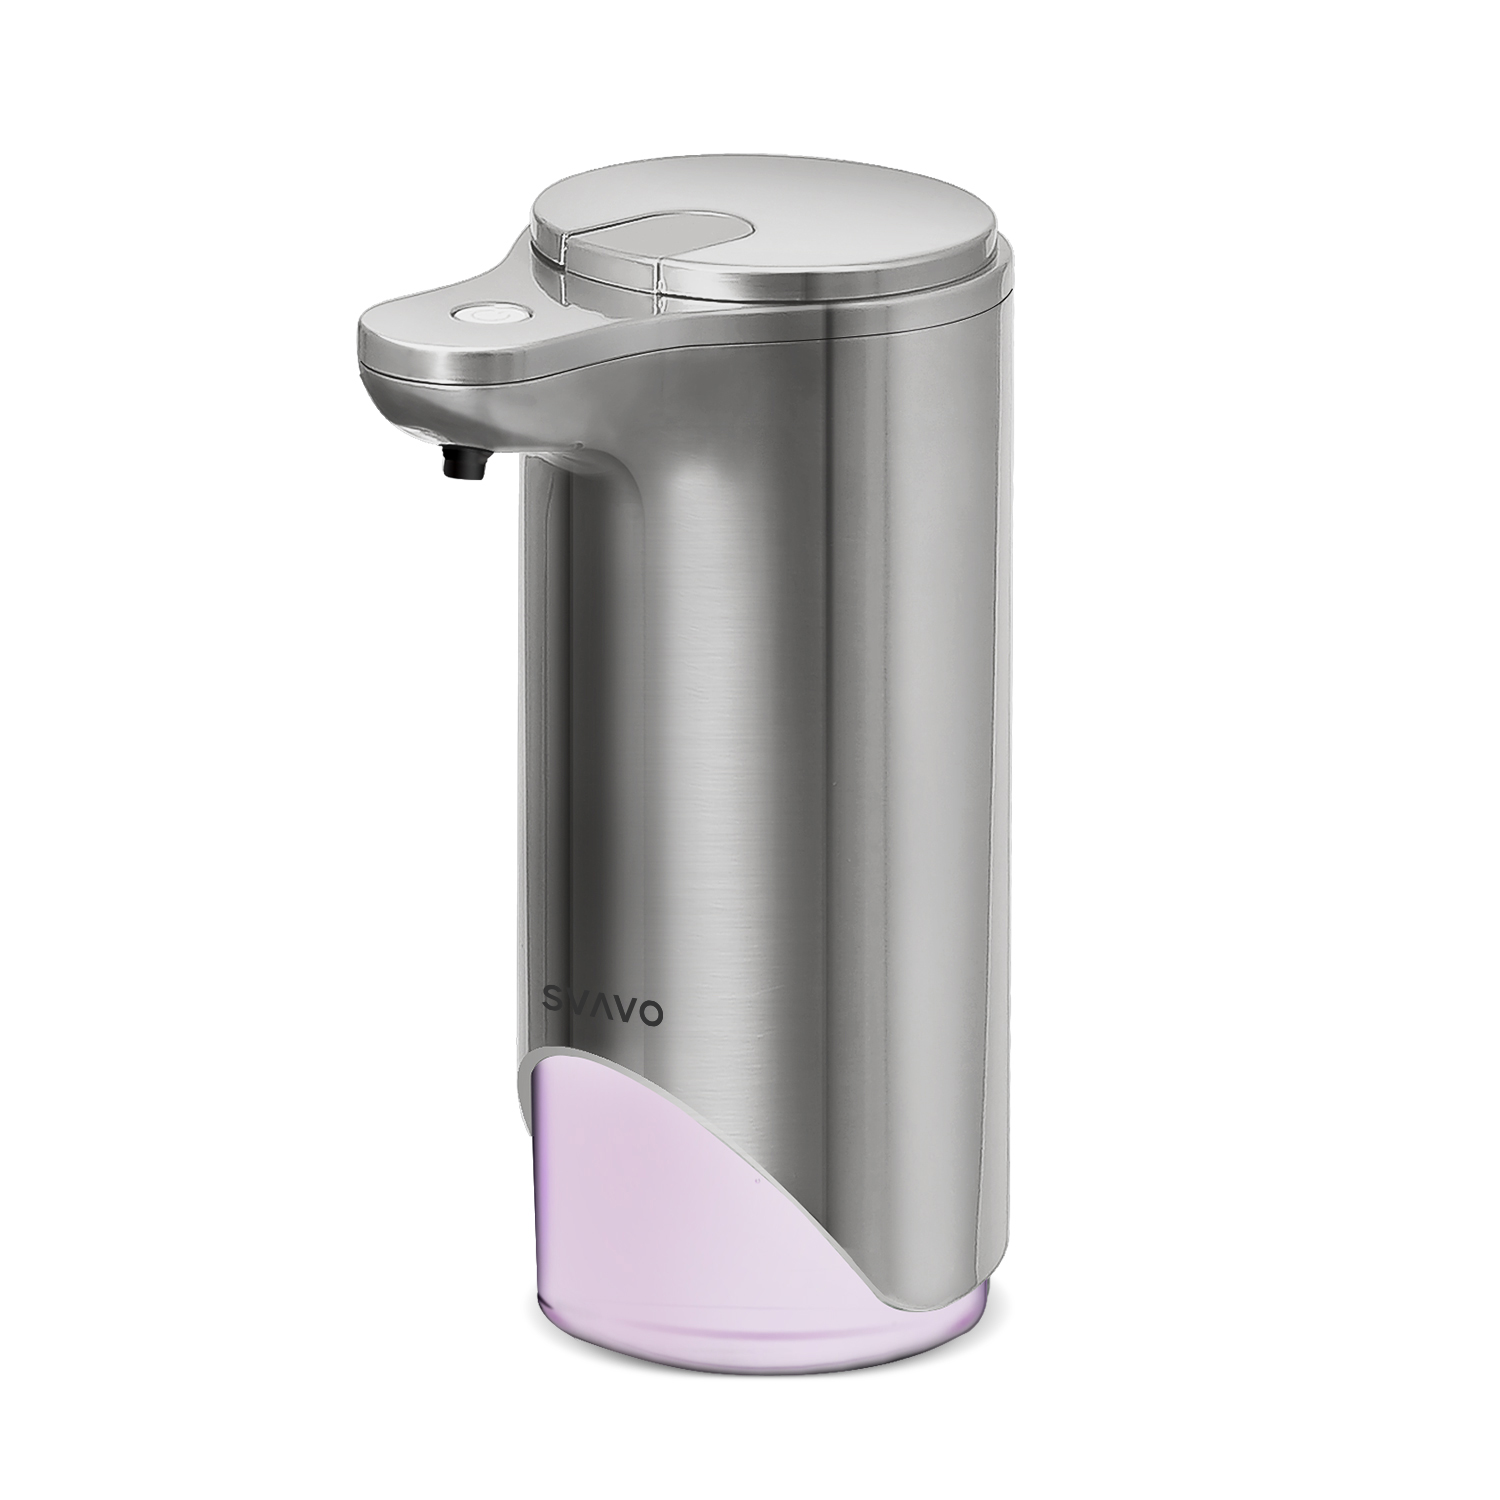 automatic wall mounted soap dispenser.jpg